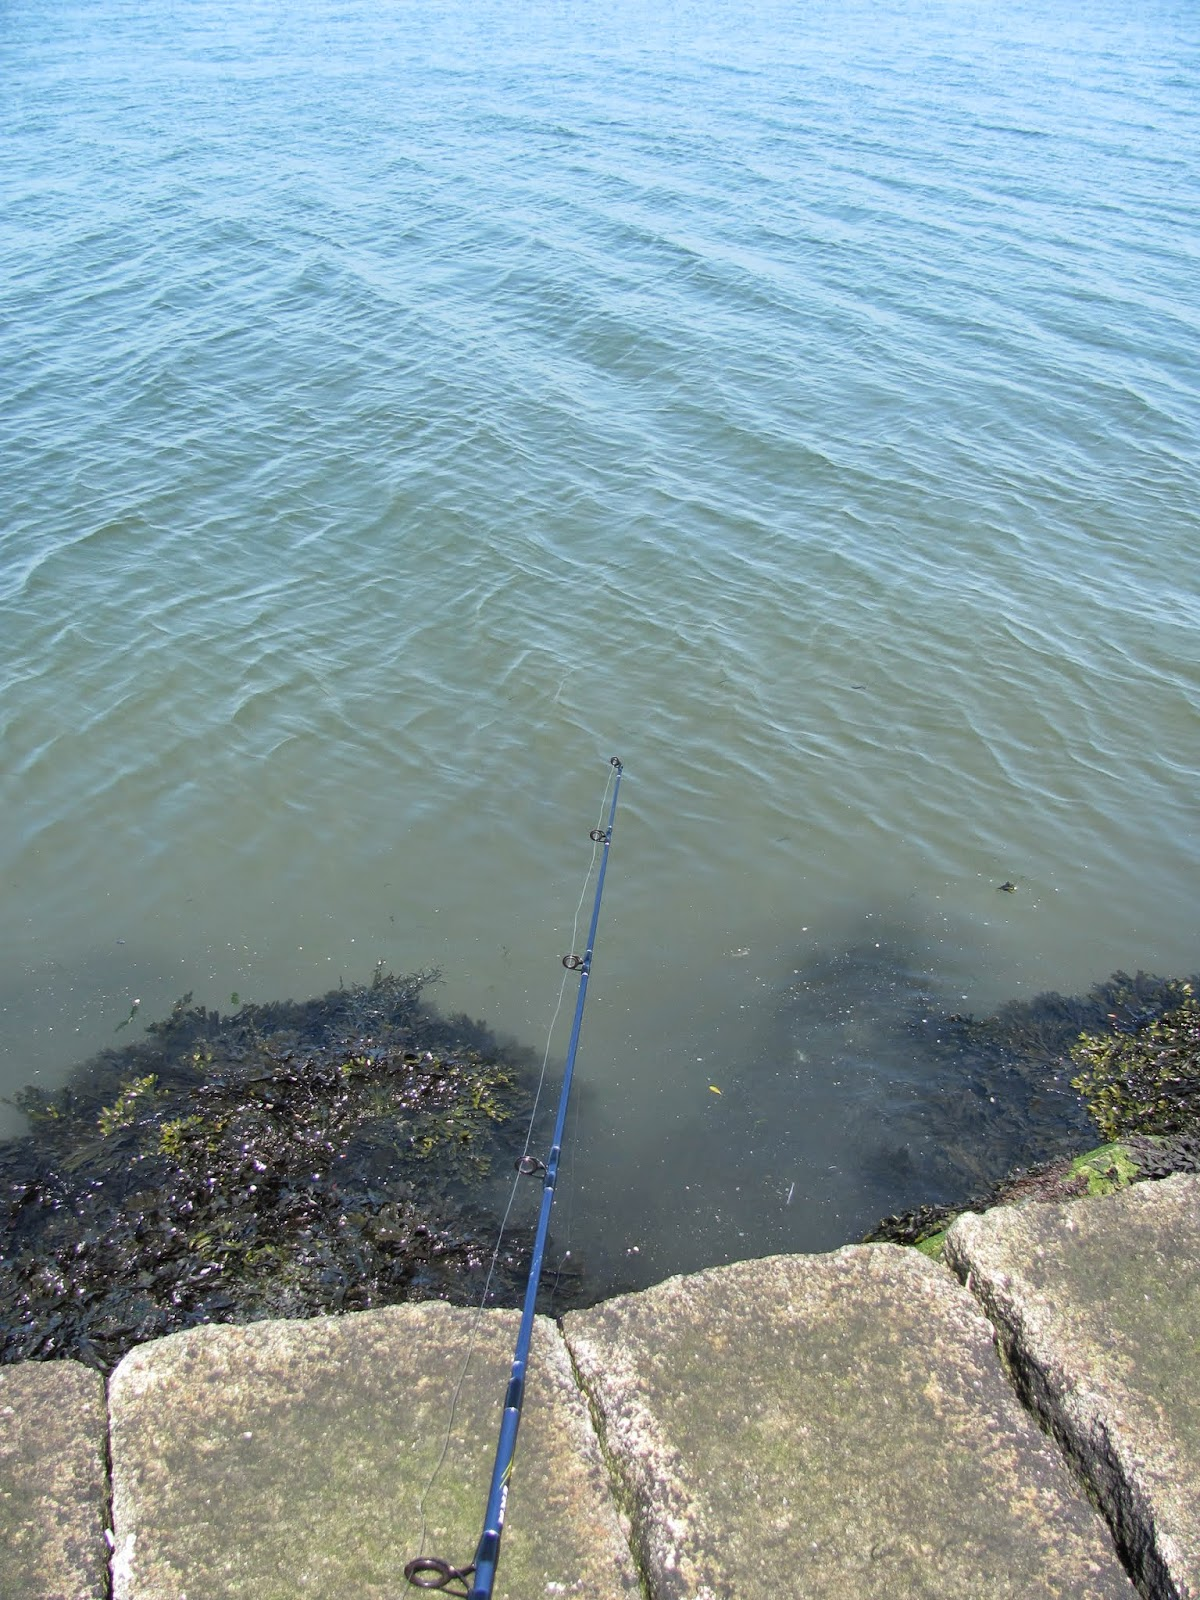 Fishing Spot at Poolbeg Lighthouse Dublin, Ireland